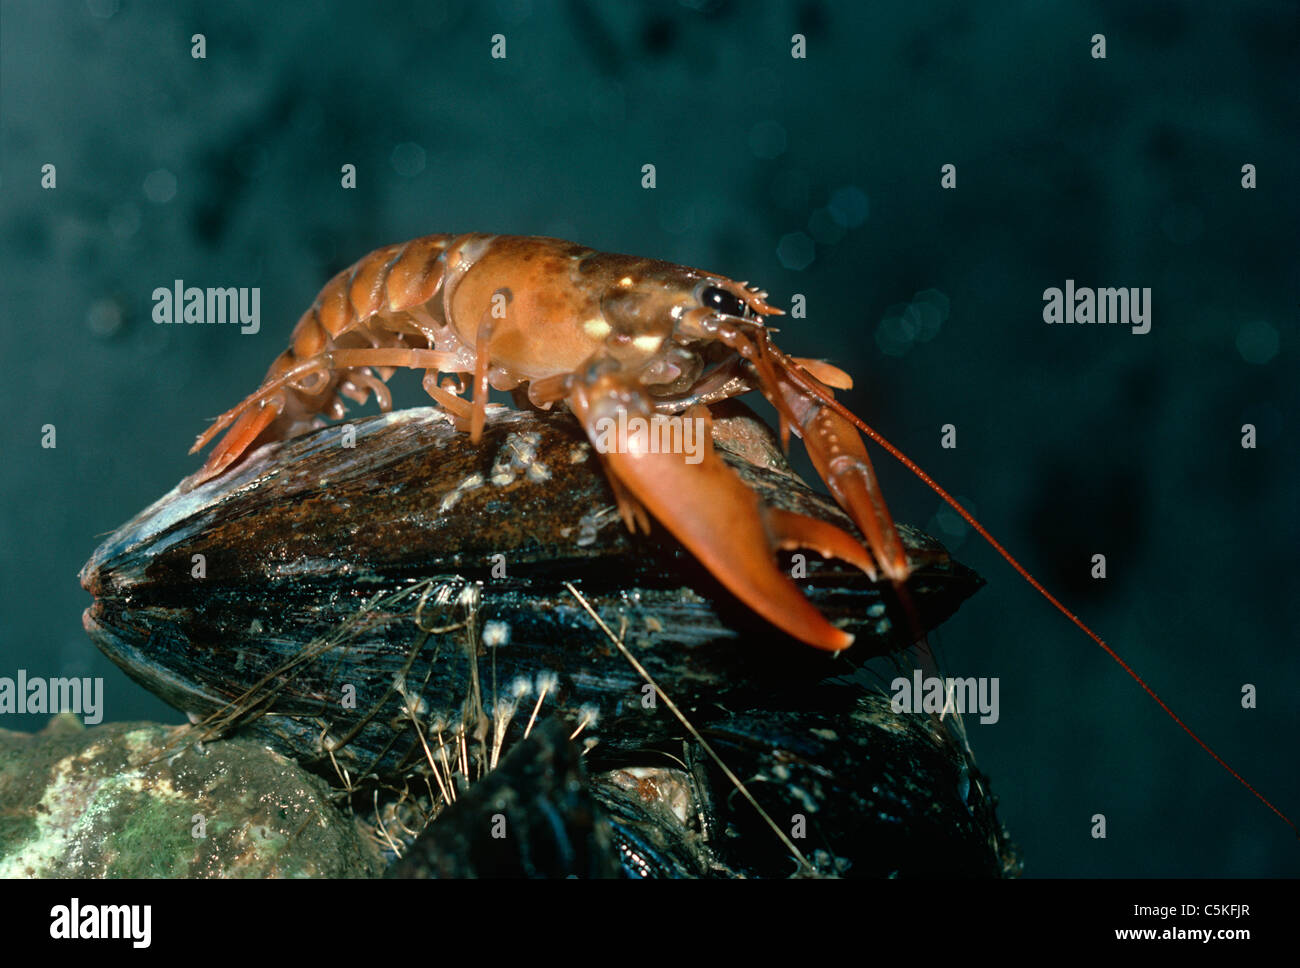 One-Year old American Lobster (Homarus americanus) scavenges on a mussel.  Massachusetts, USA - Stock Image